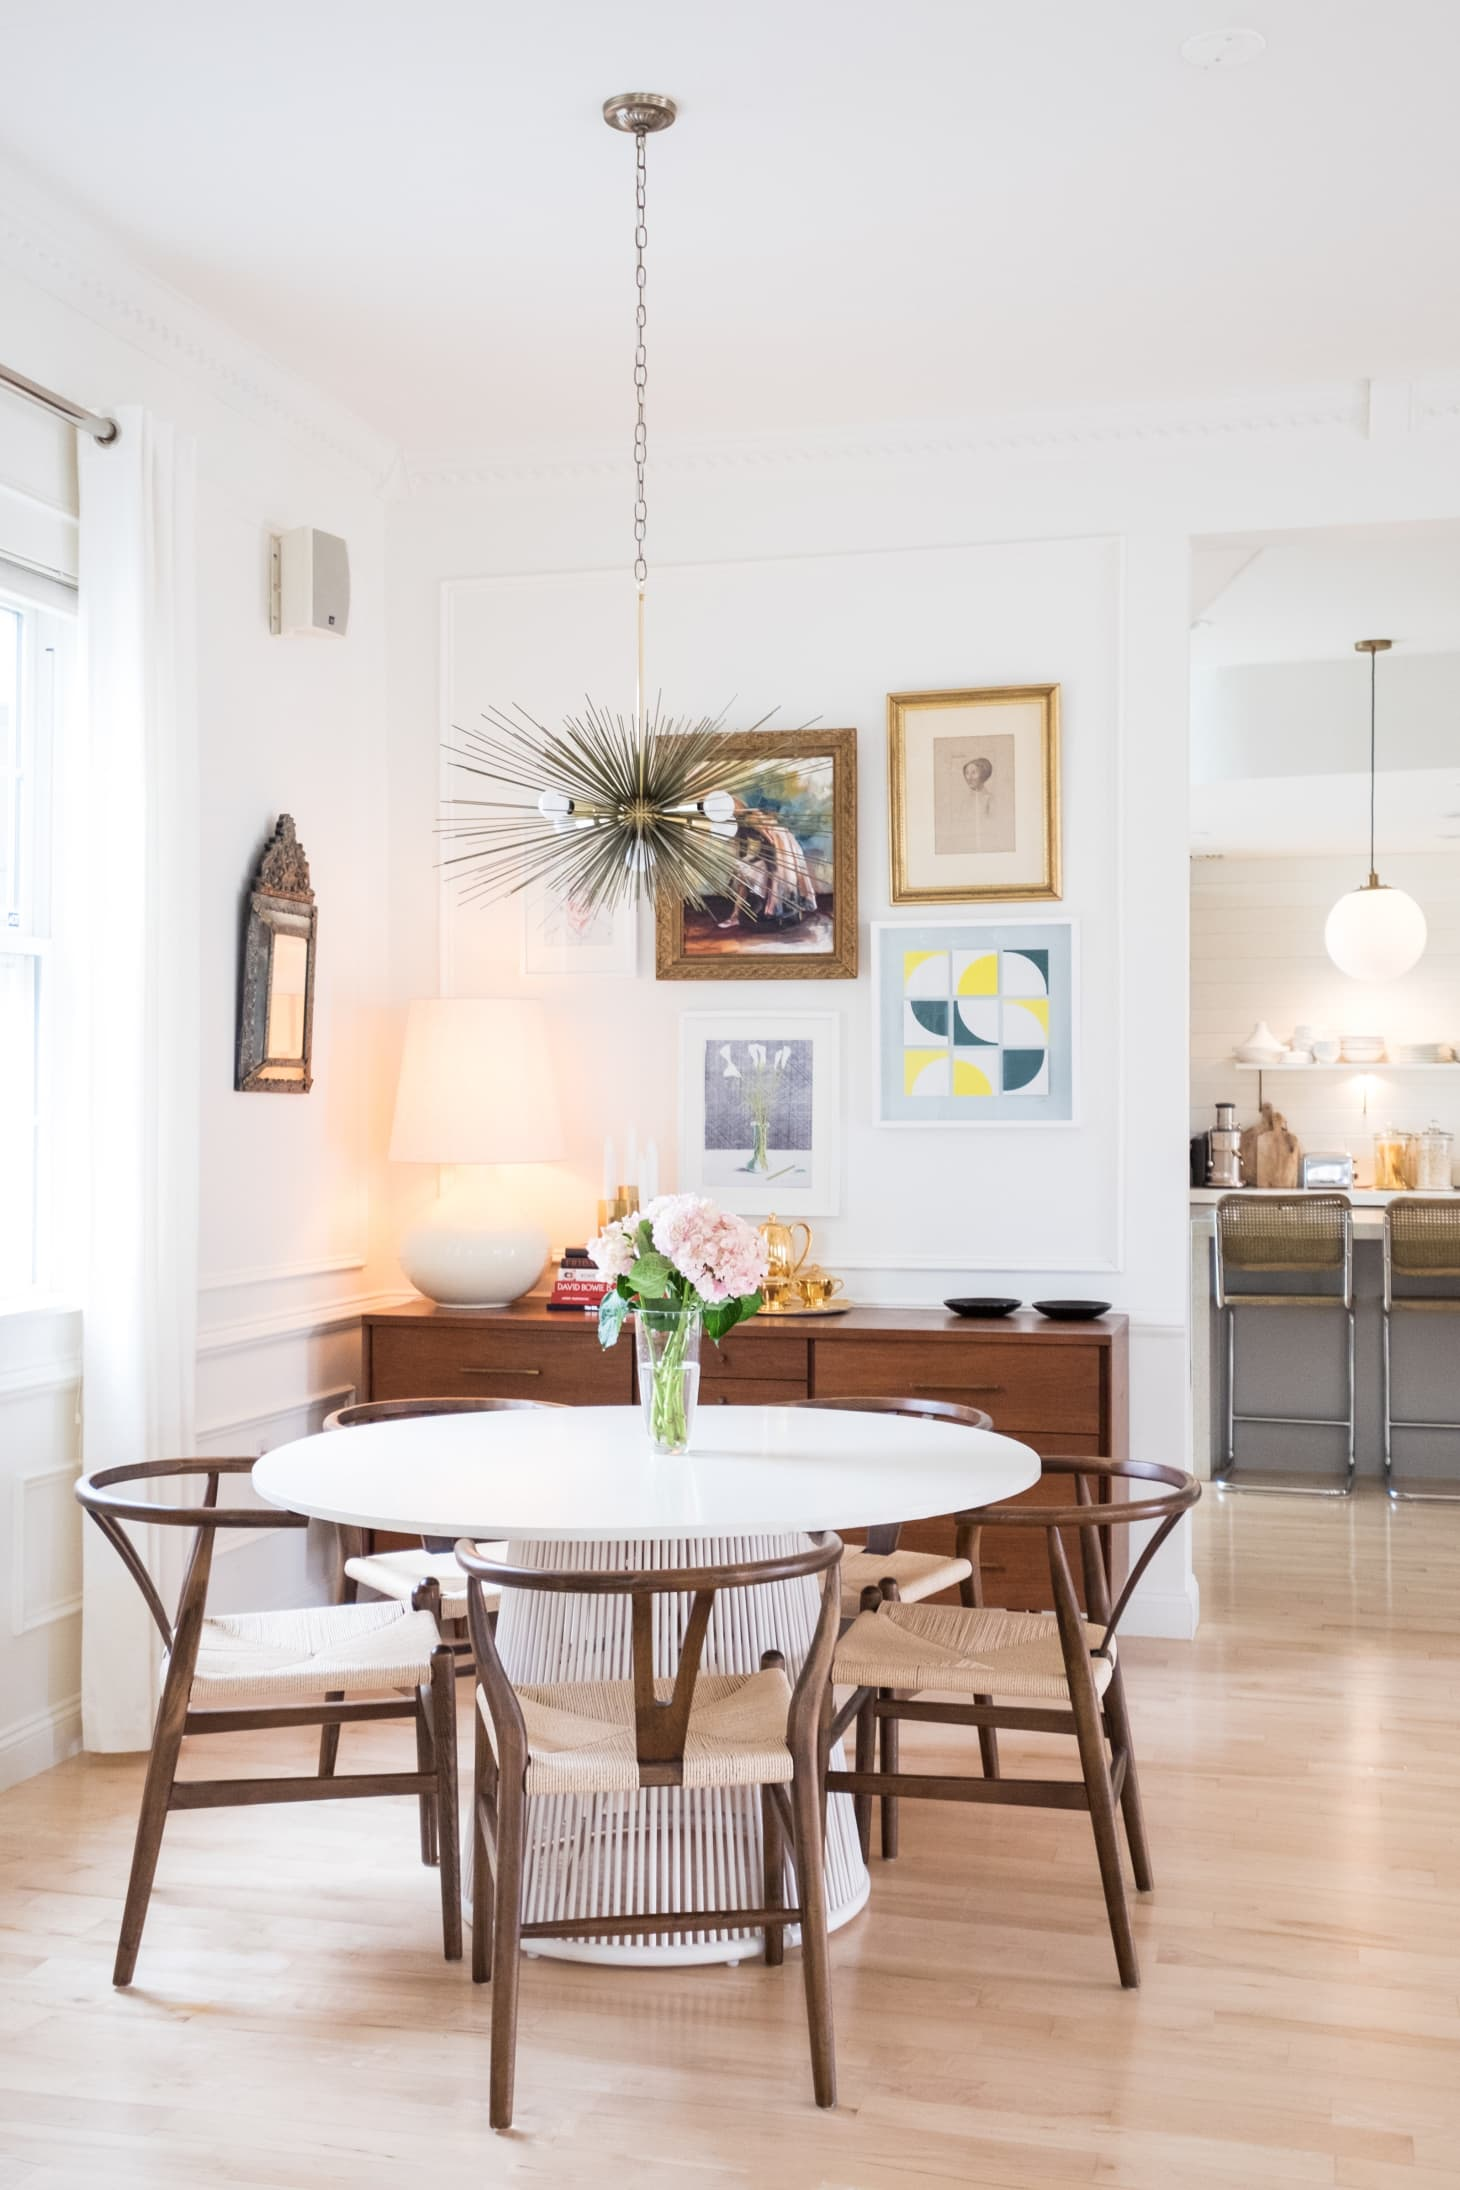 How High Should I Hang A Light Above The Dining Table Apartment